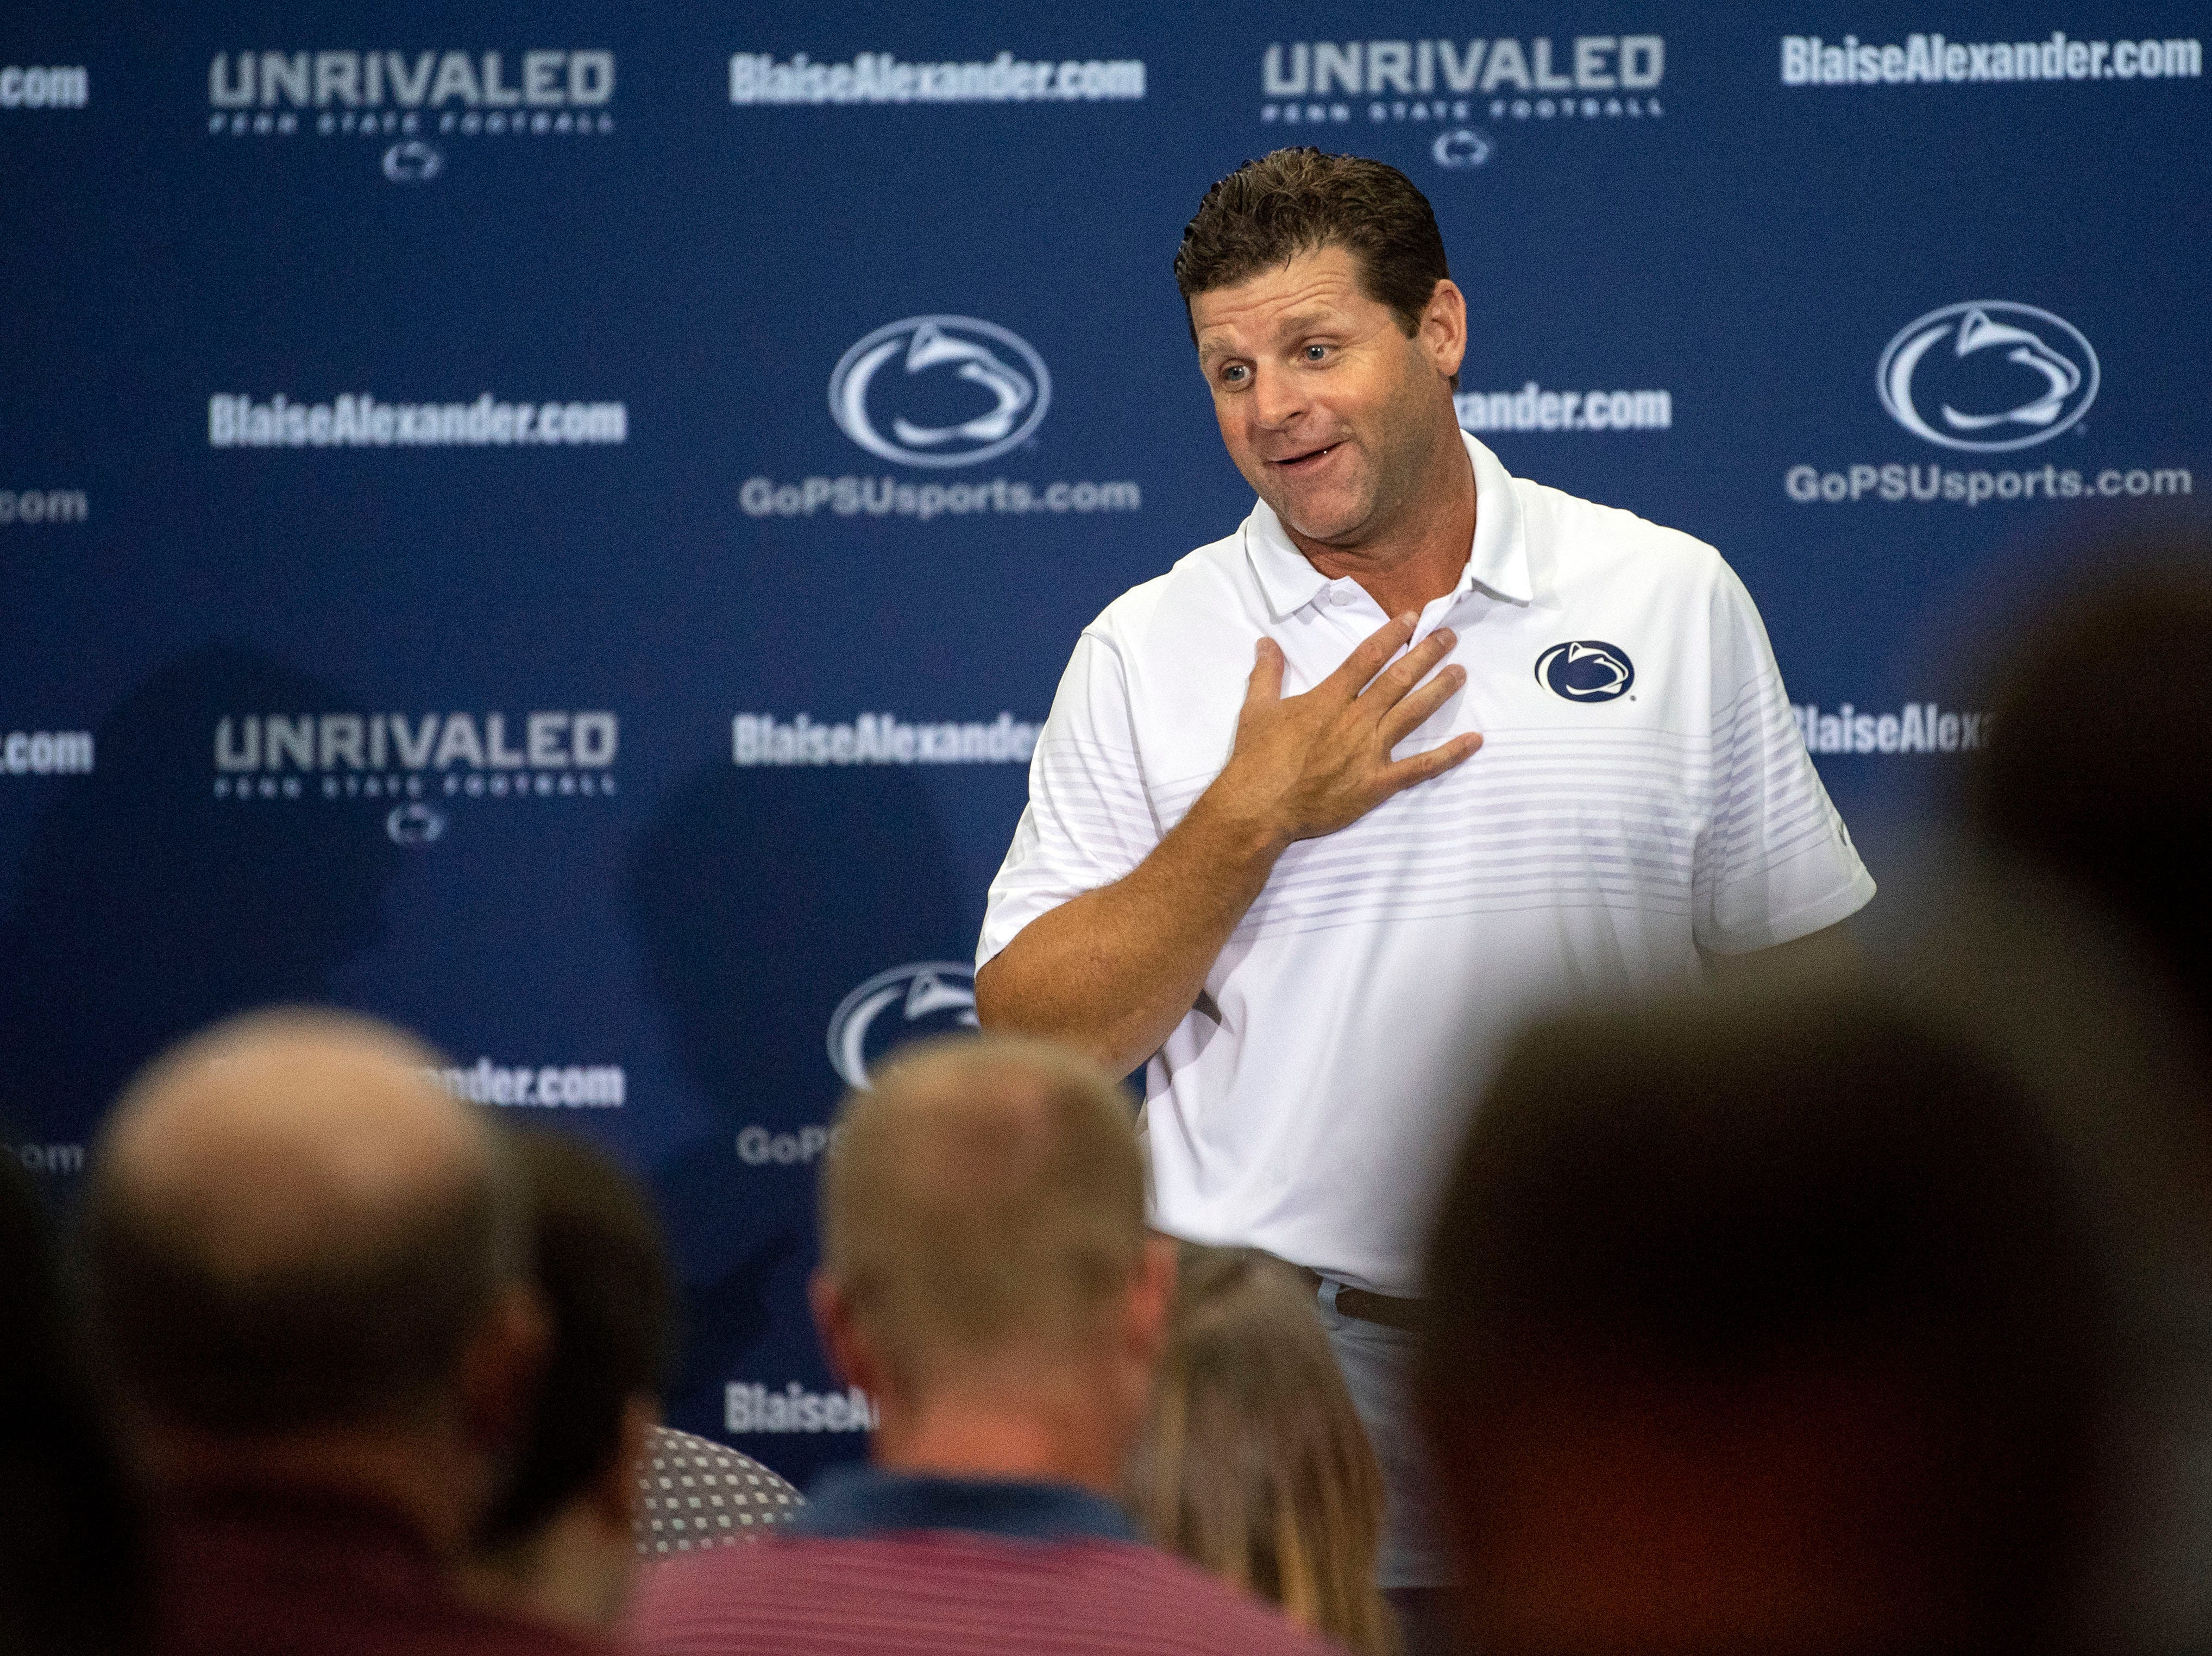 Penn State defensive coordinator and linebackers coach Brent Pry jokes about head coach James Franklin's bruises from a recent players versus coaches paintball game during media day at Beaver Stadium on Saturday, August 4, 2018.